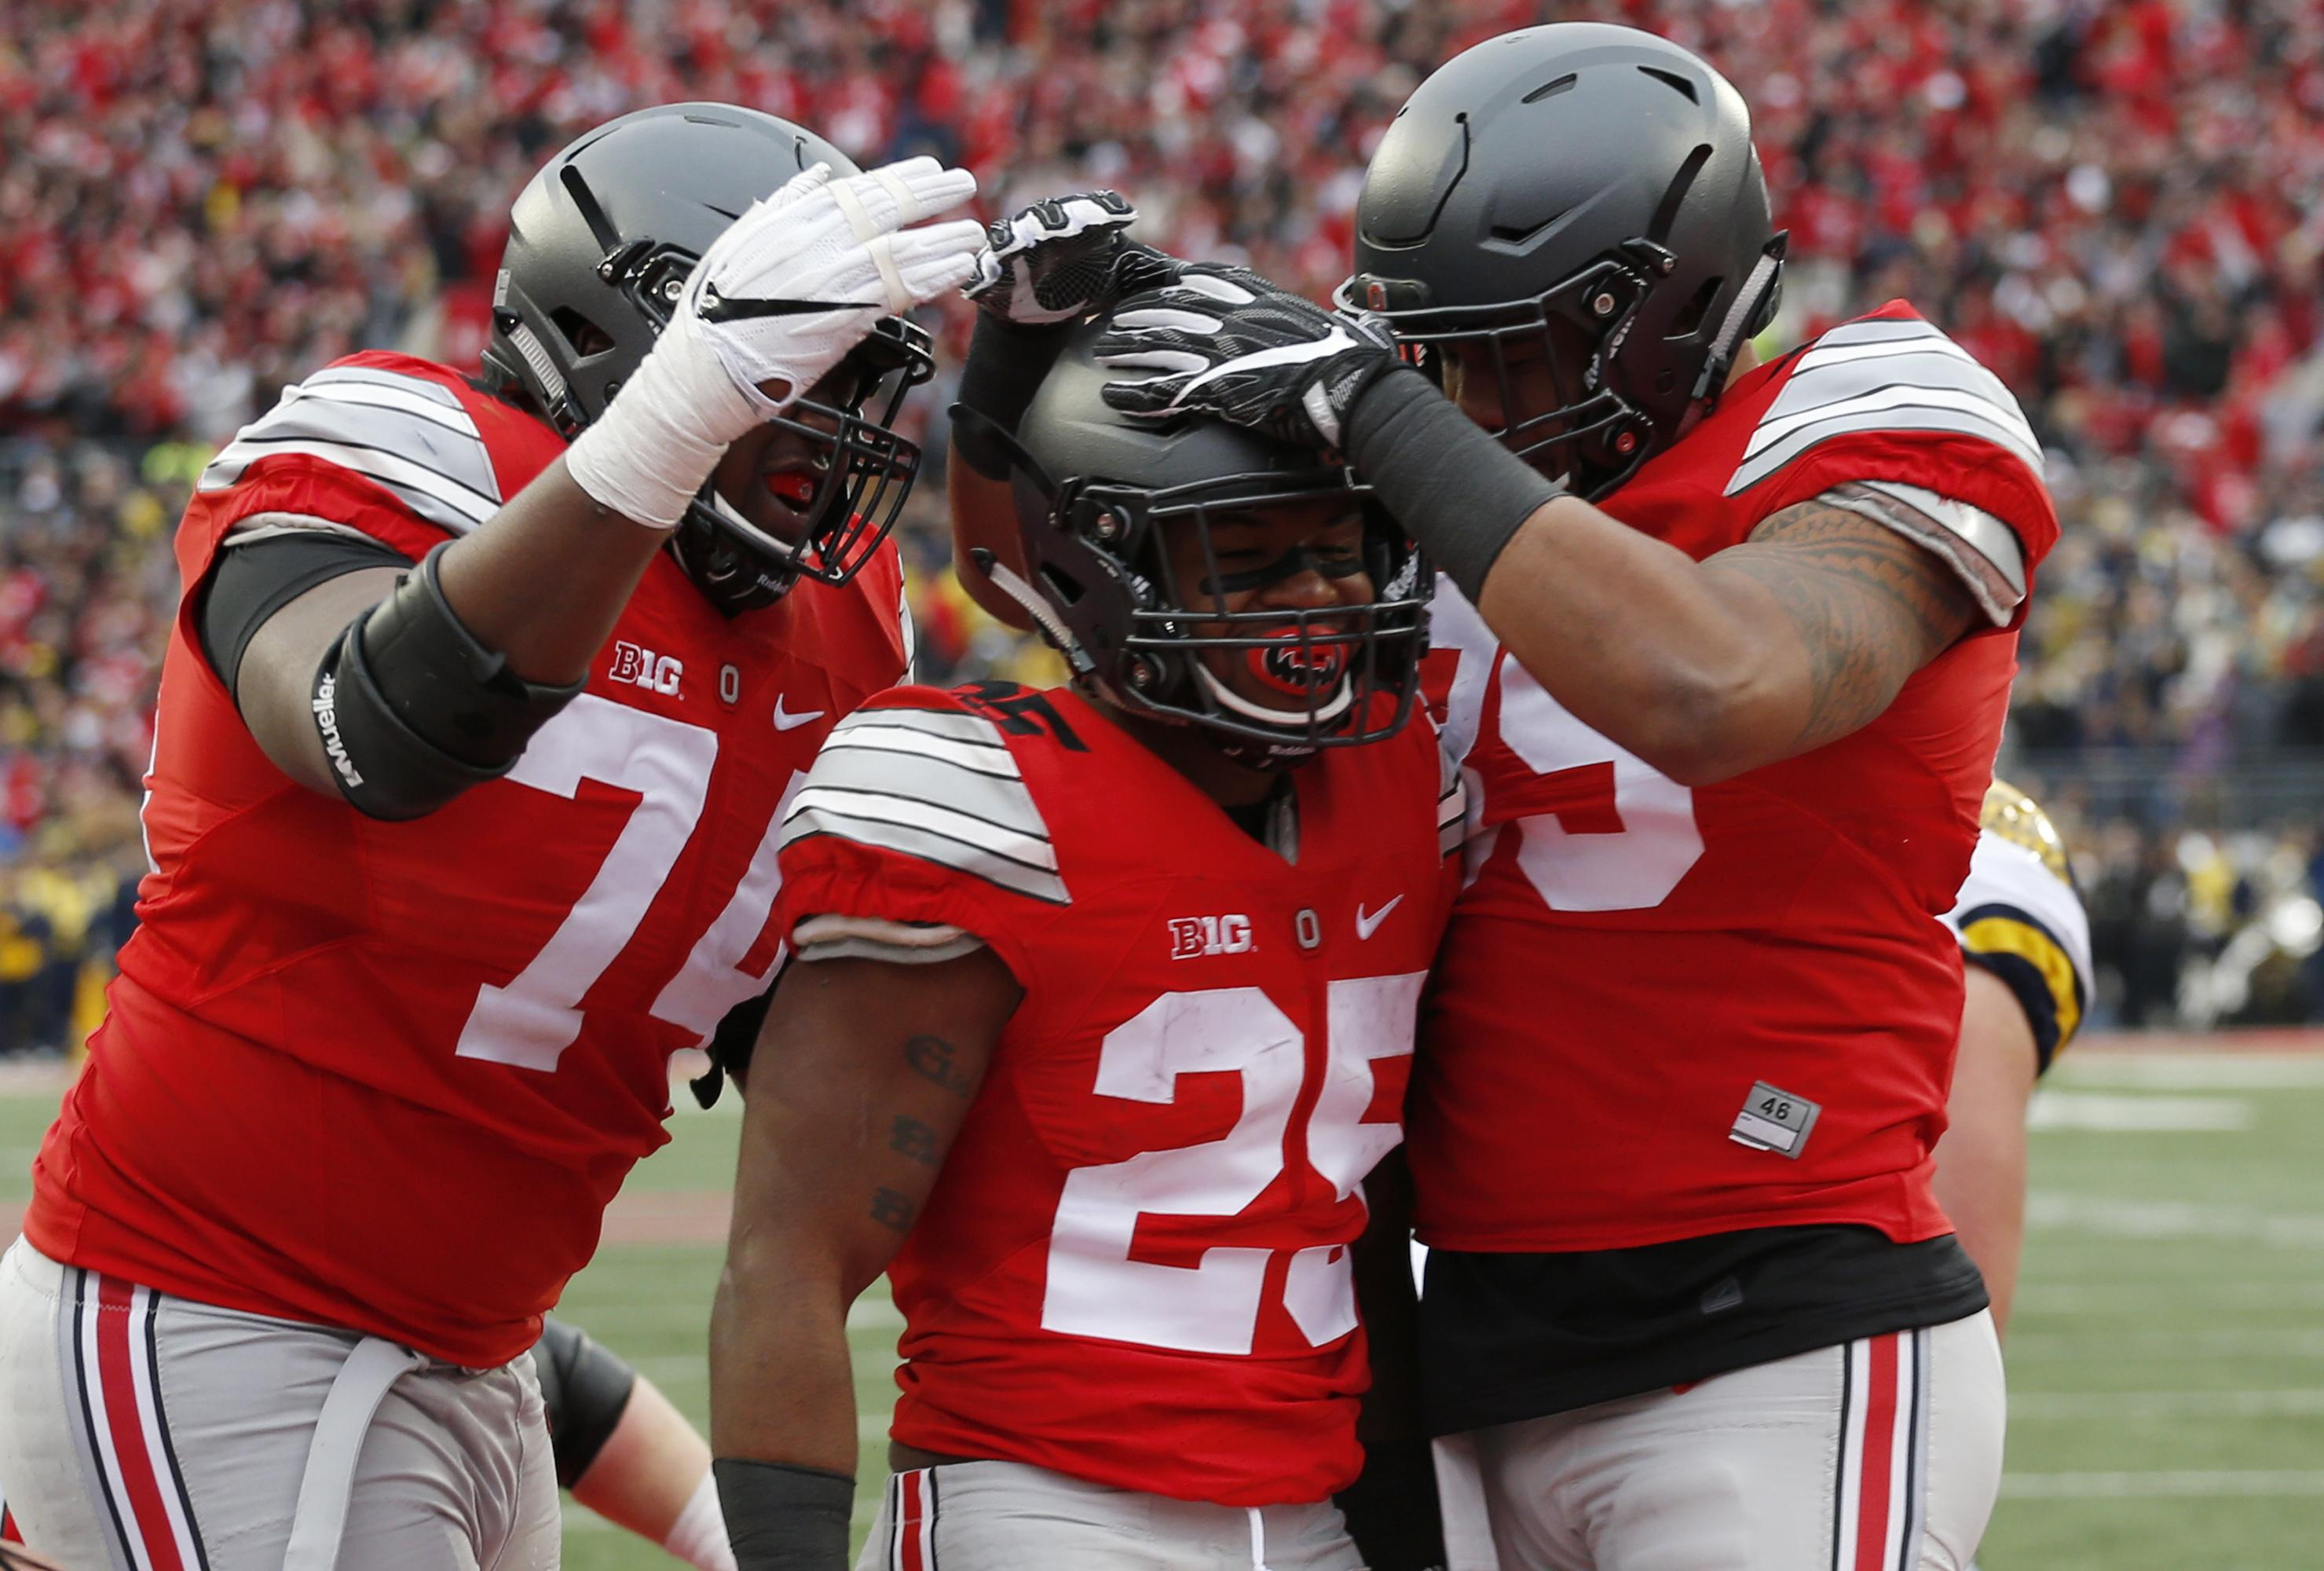 Michigan-Ohio State most-watched college game of season ...